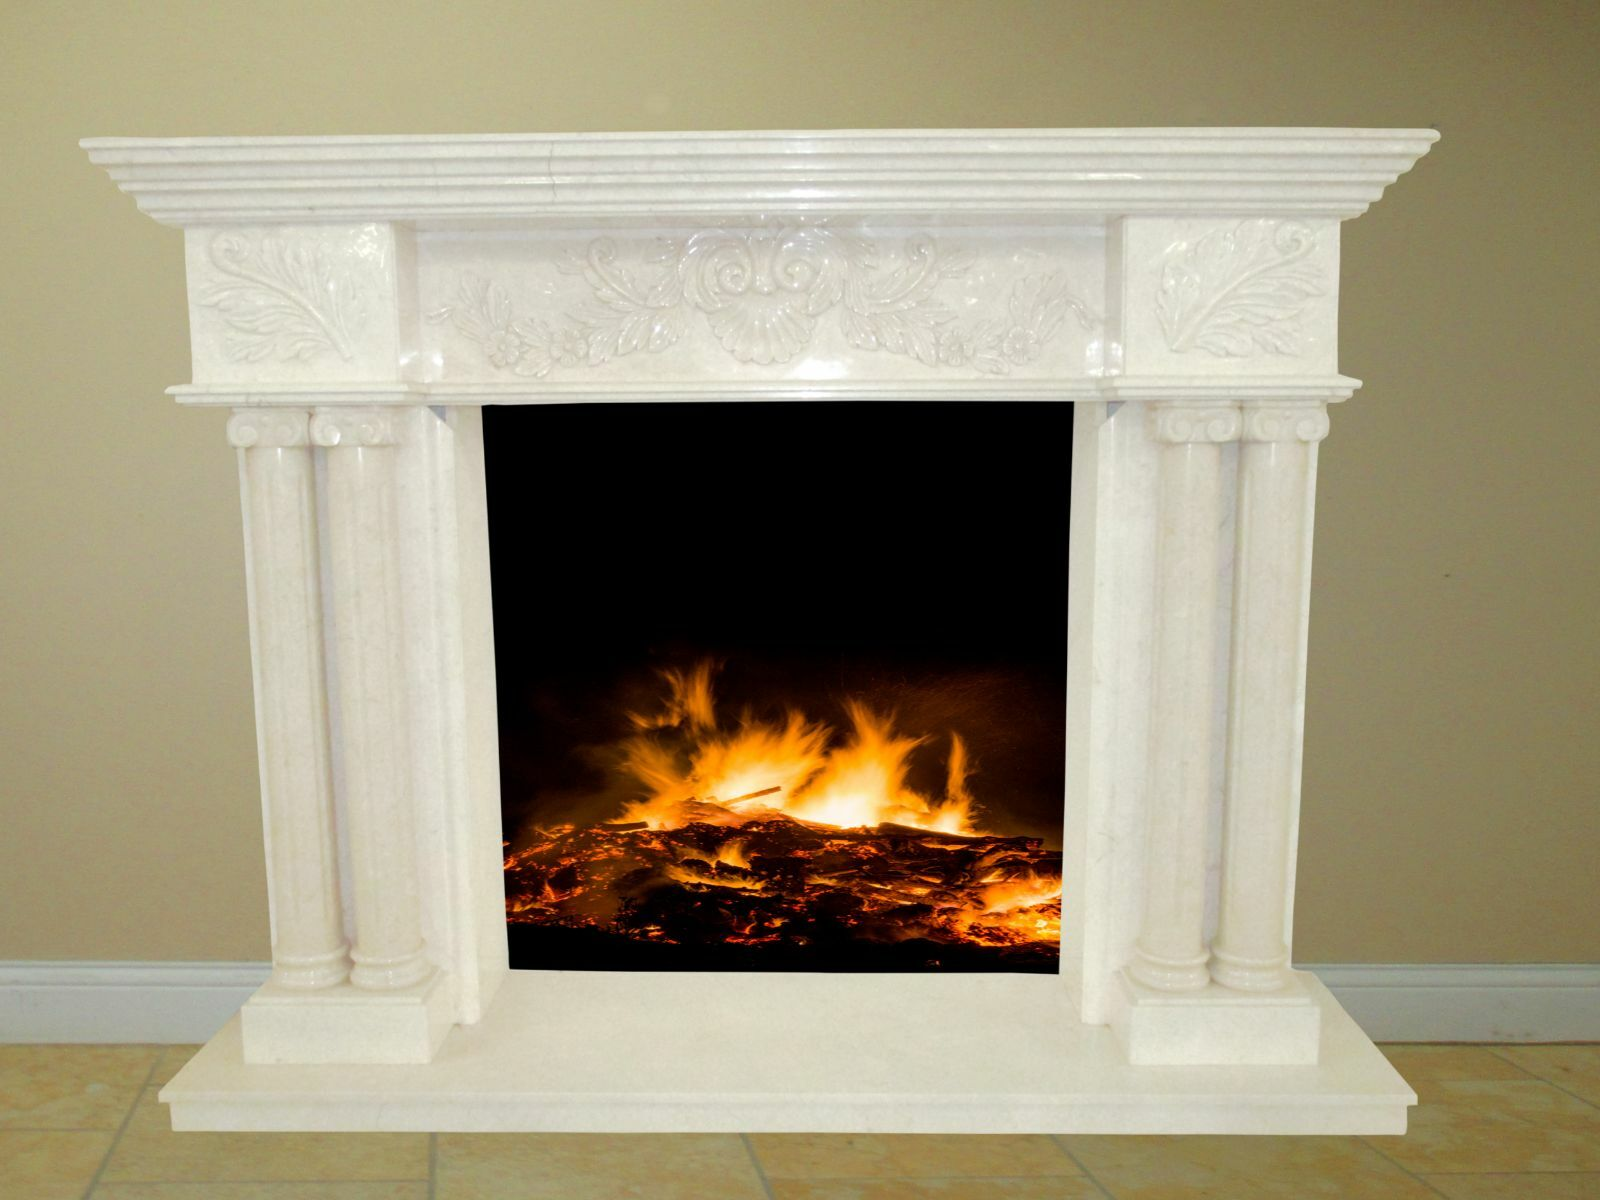 Creamy White Fireplace Surround Mantel Marble Living Room Family Room Fps 06 For Sale Online